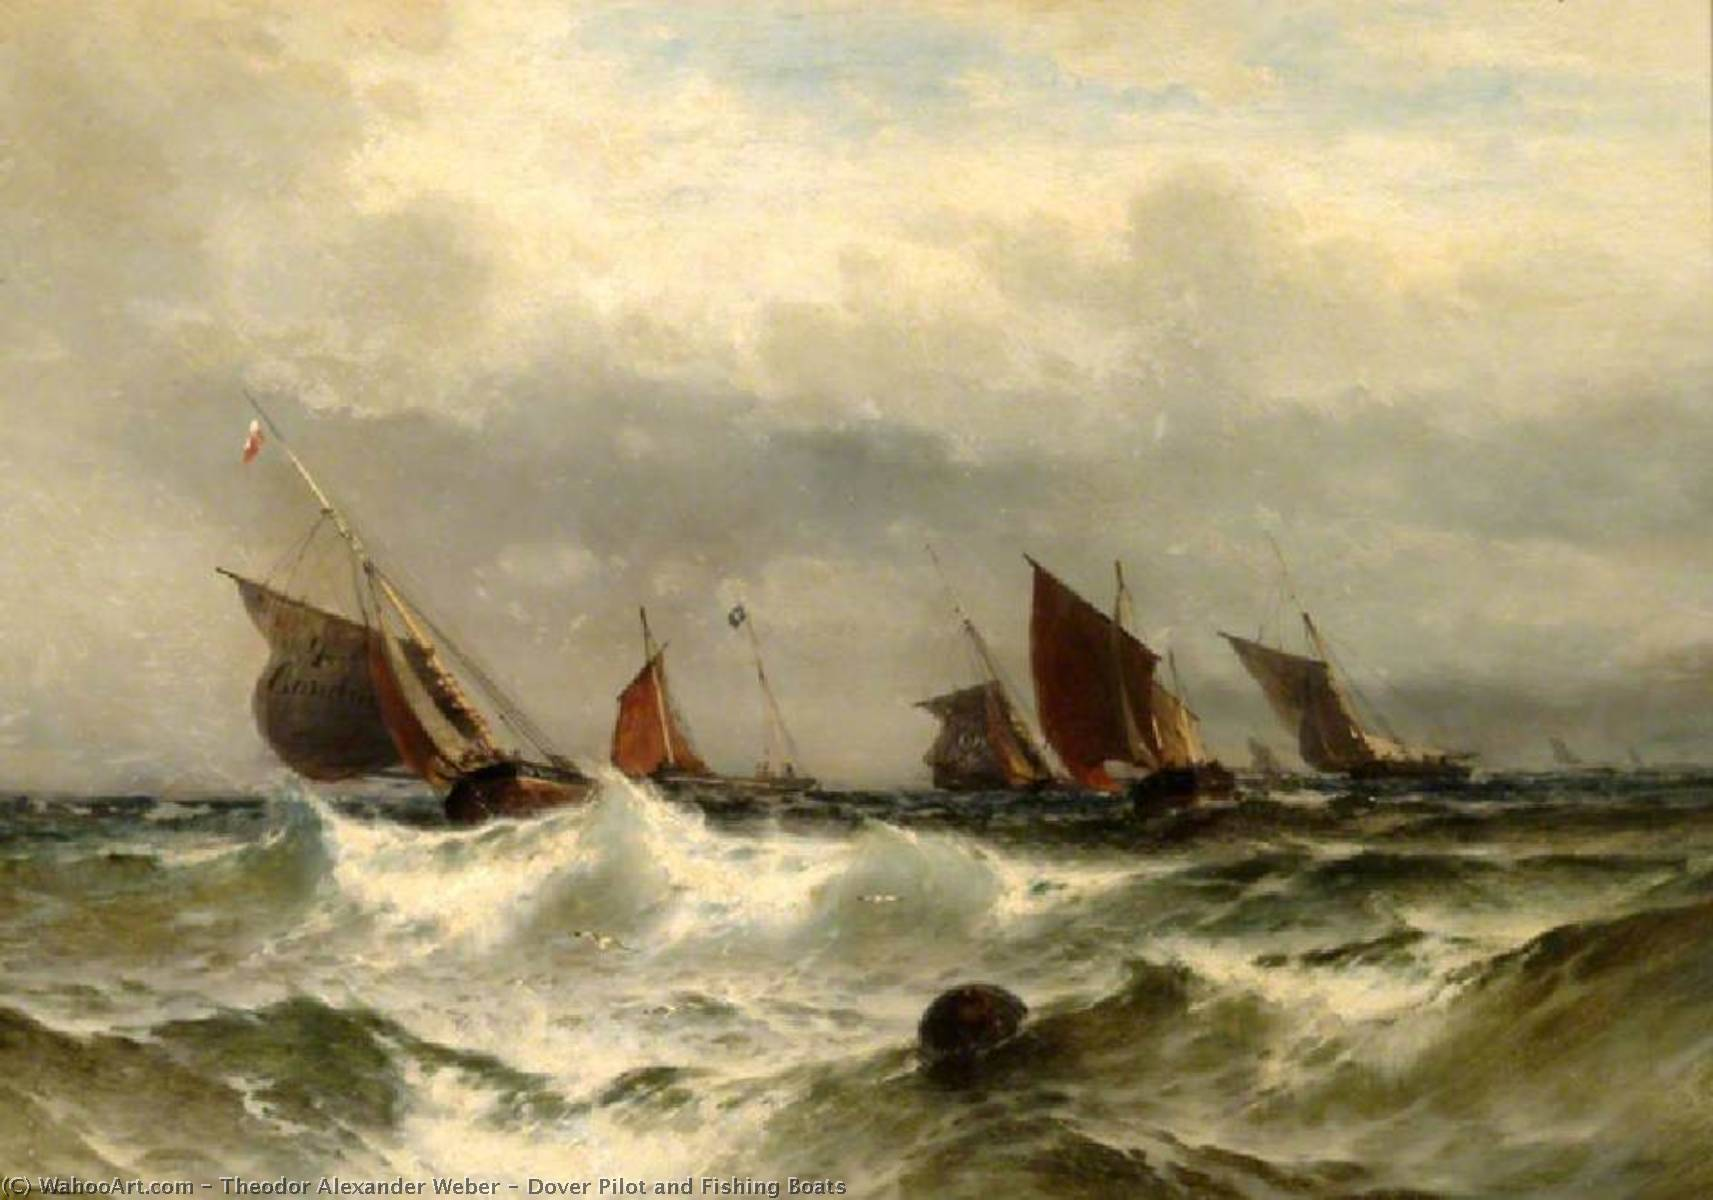 Dover Pilot and Fishing Boats, 1882 by Theodor Alexander Weber (1838-1907) | Oil Painting | ArtsDot.com